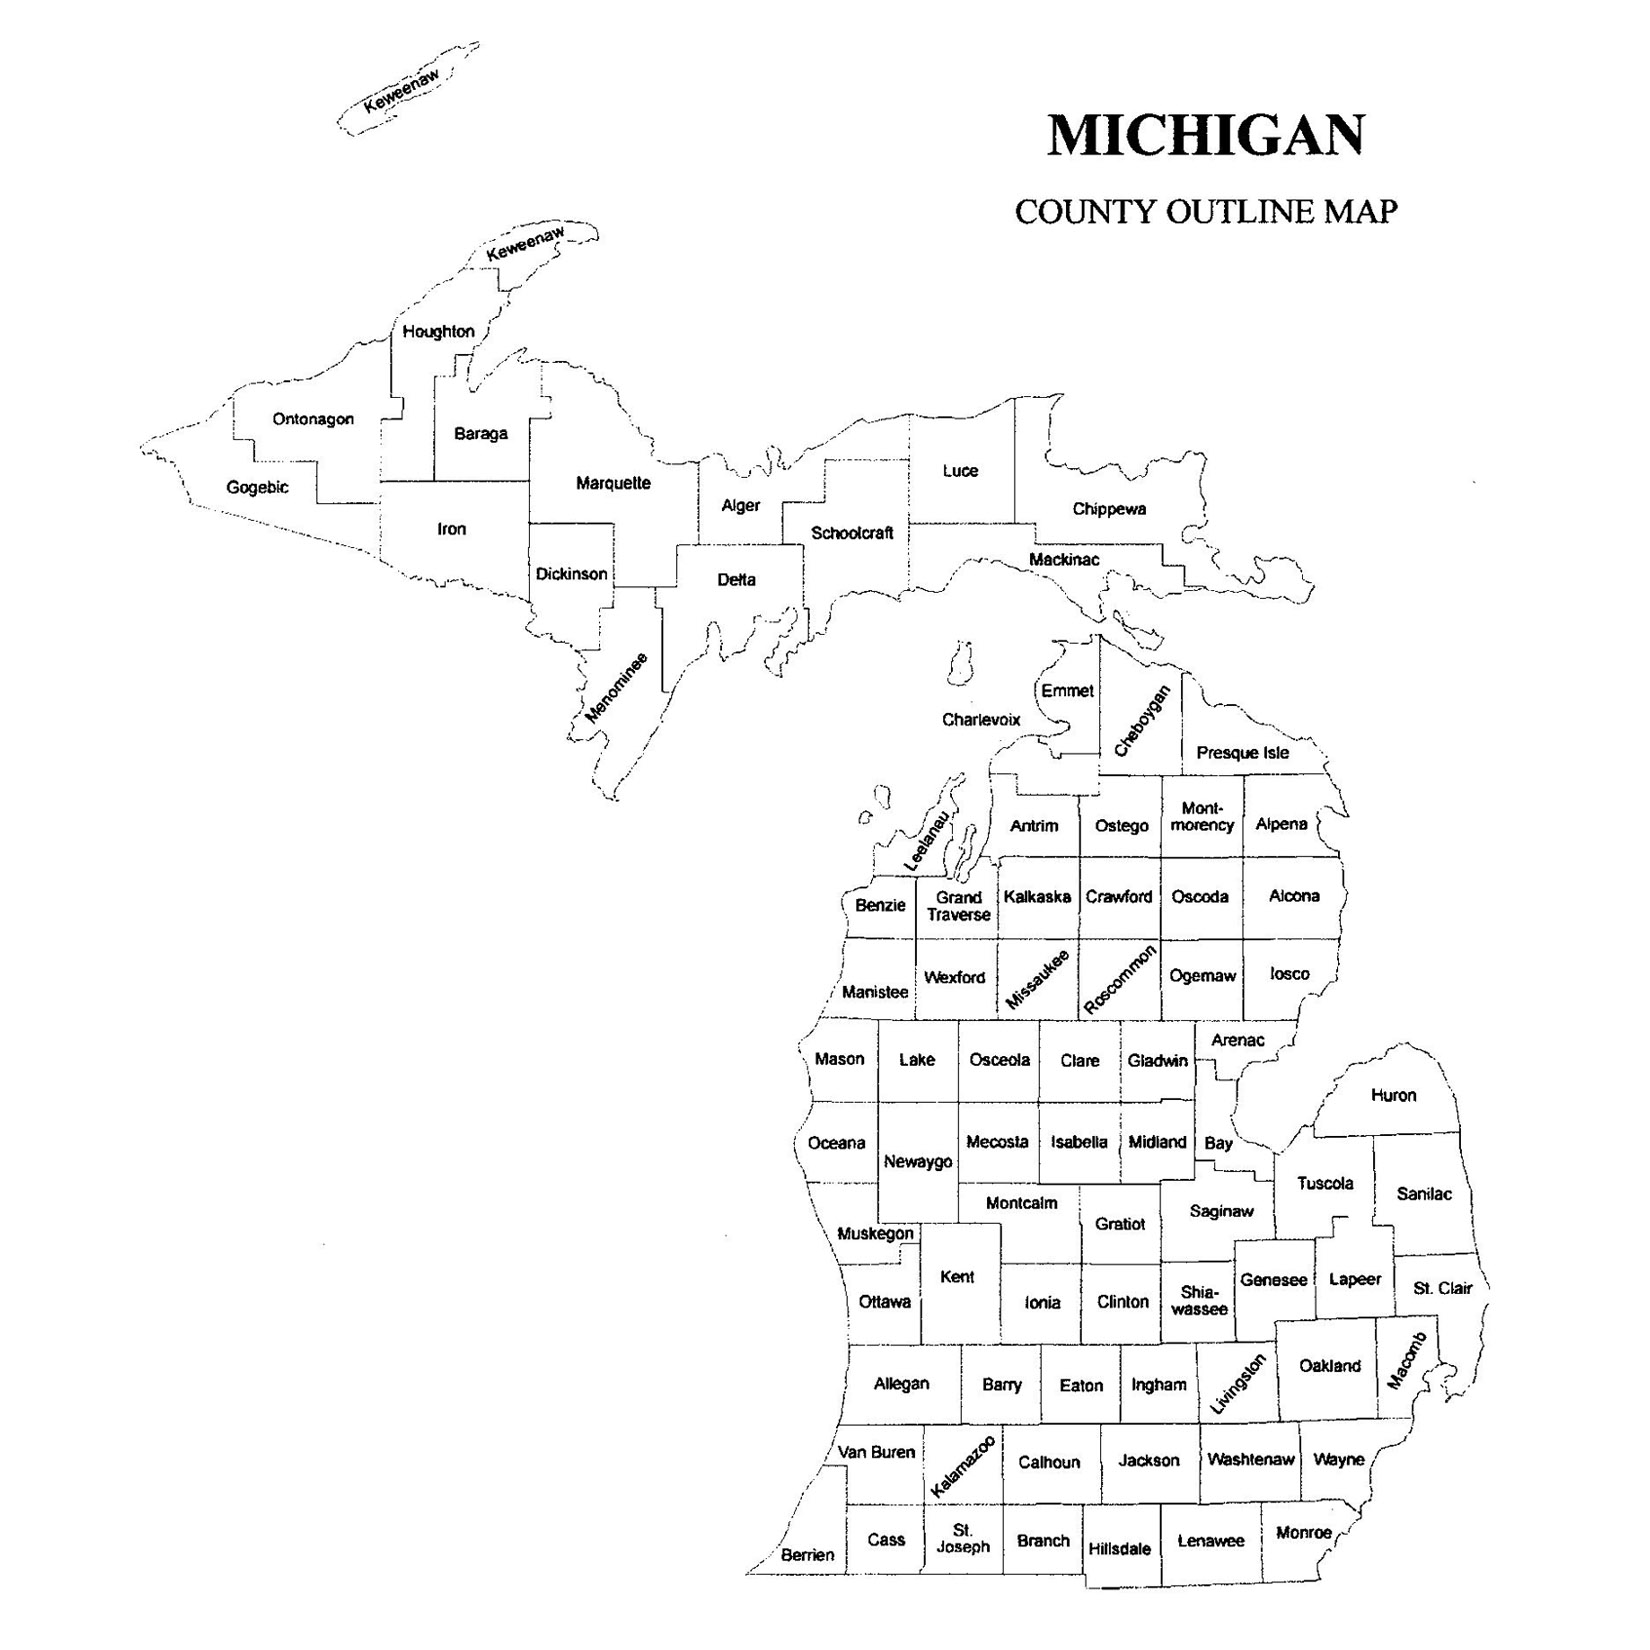 Michigan County Map JigsawGenealogy - Michigan county map